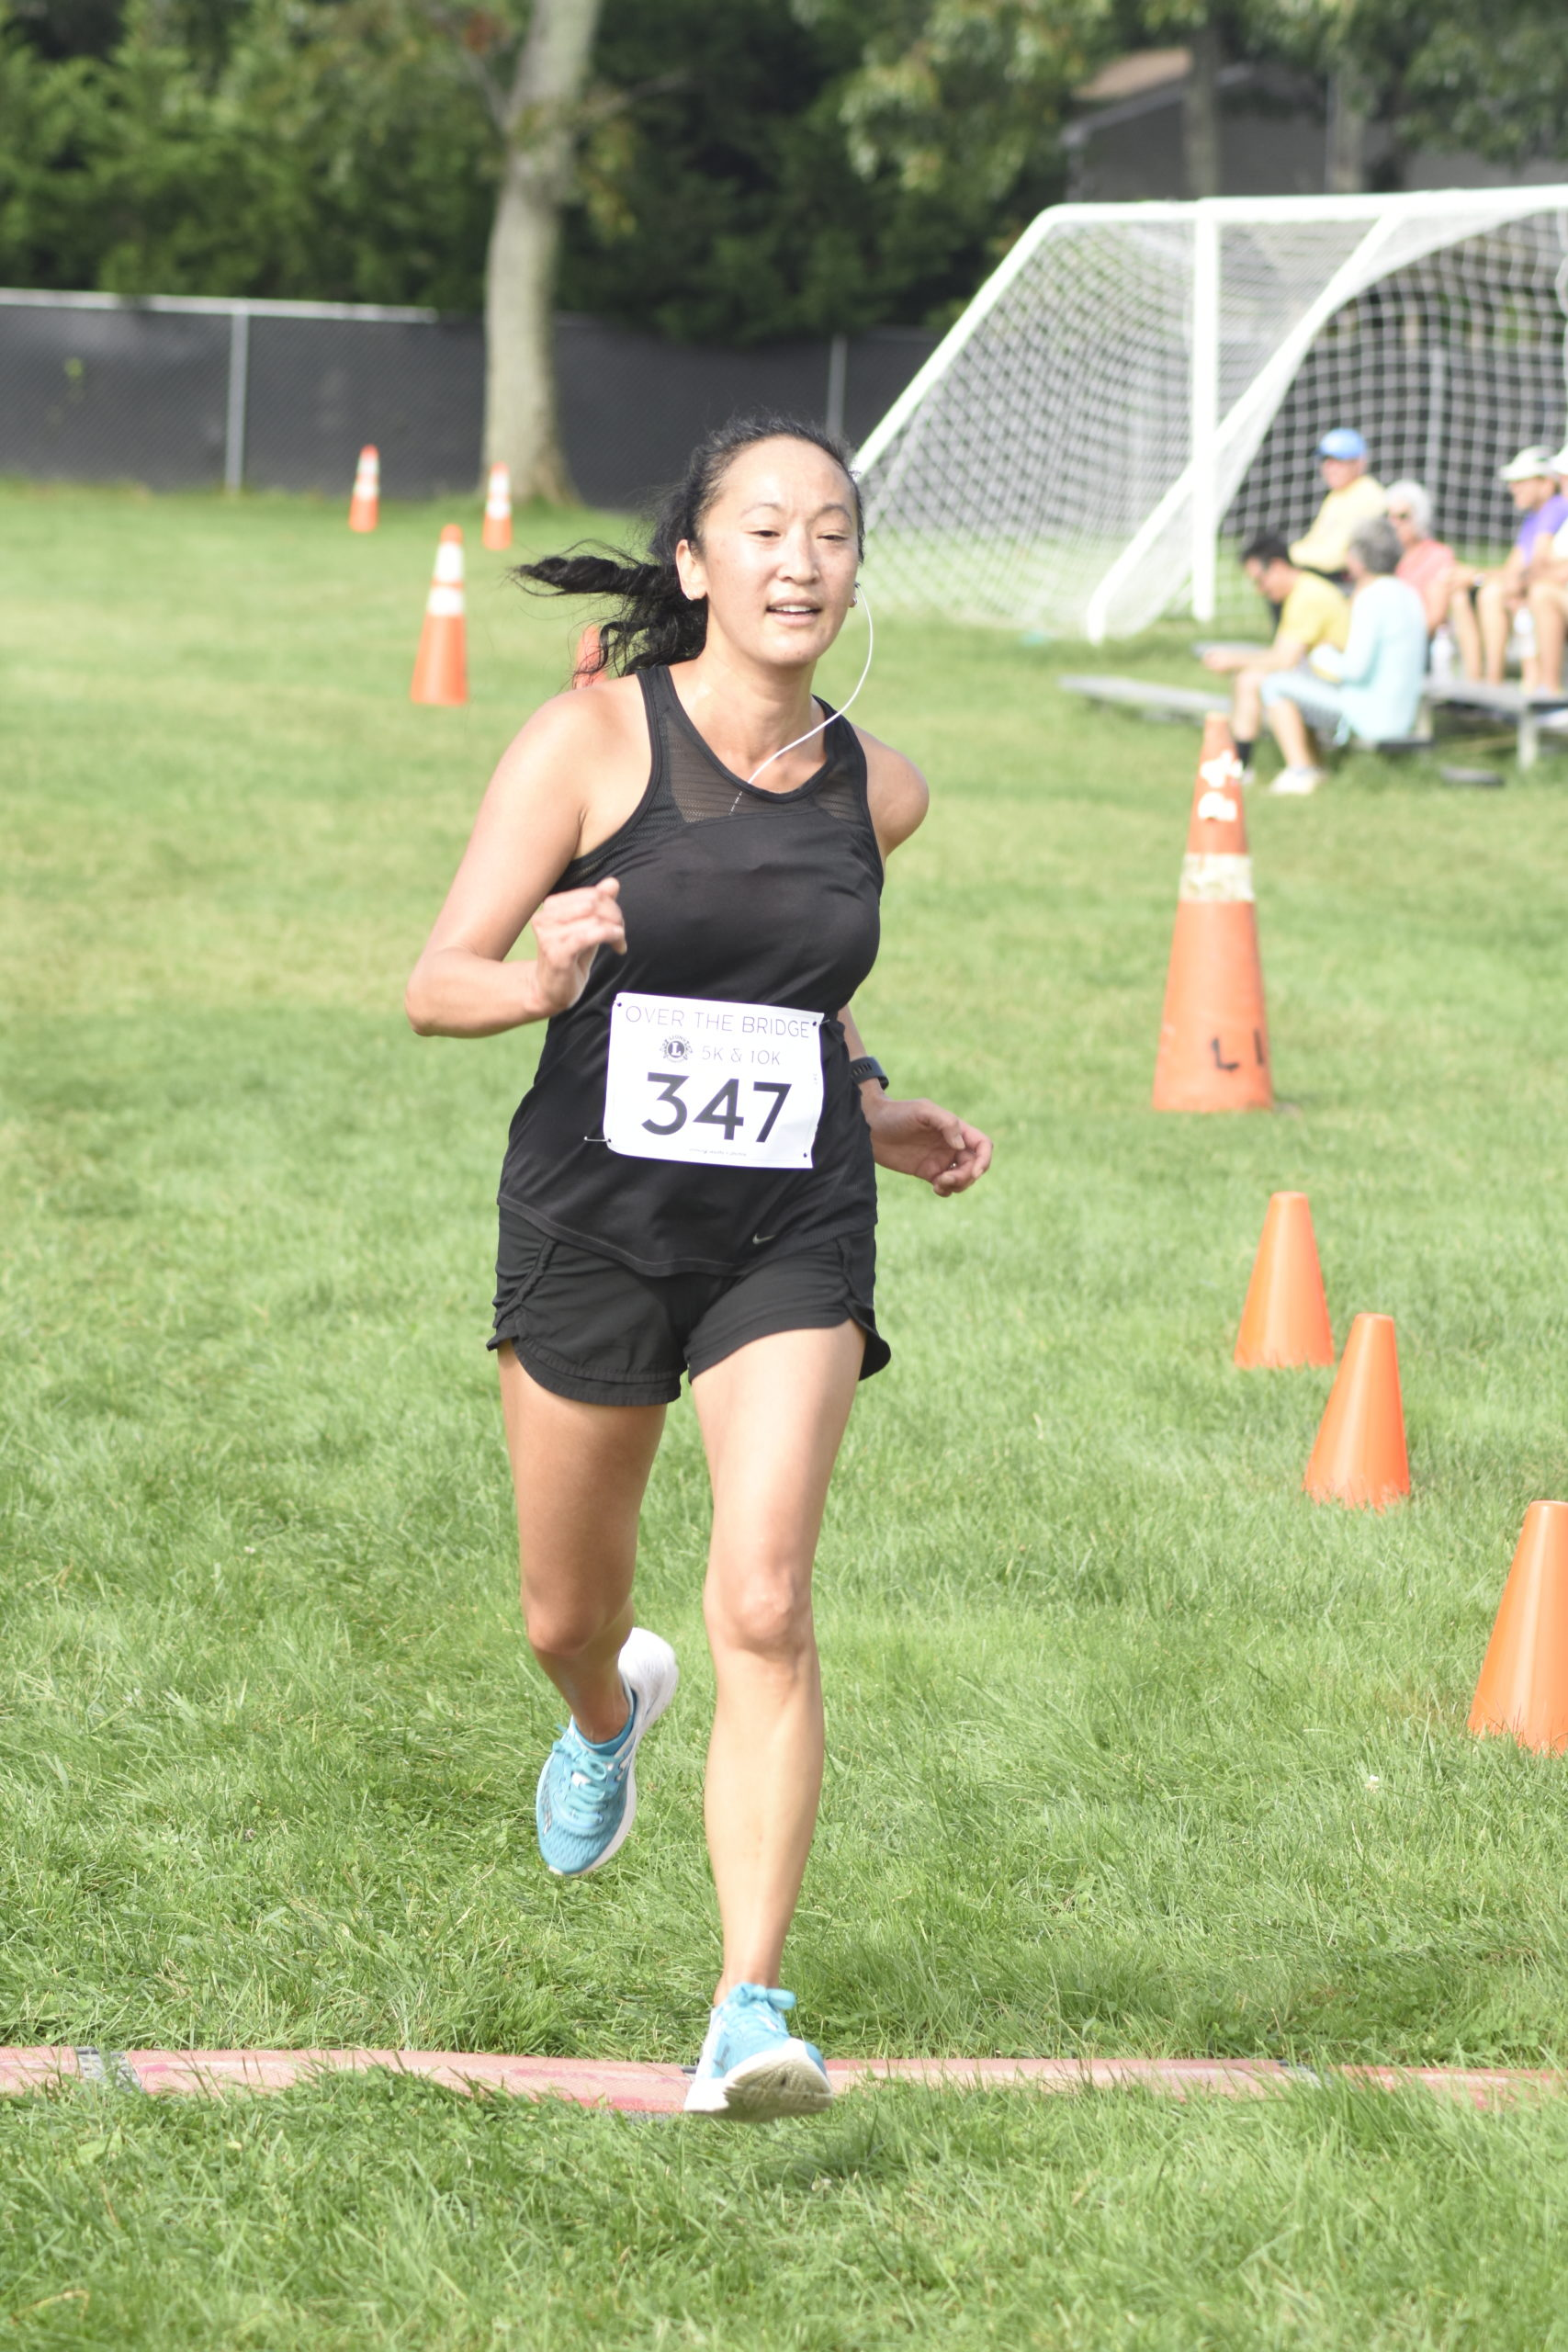 Angela Kim of Manorville placed third among women in the 10K.